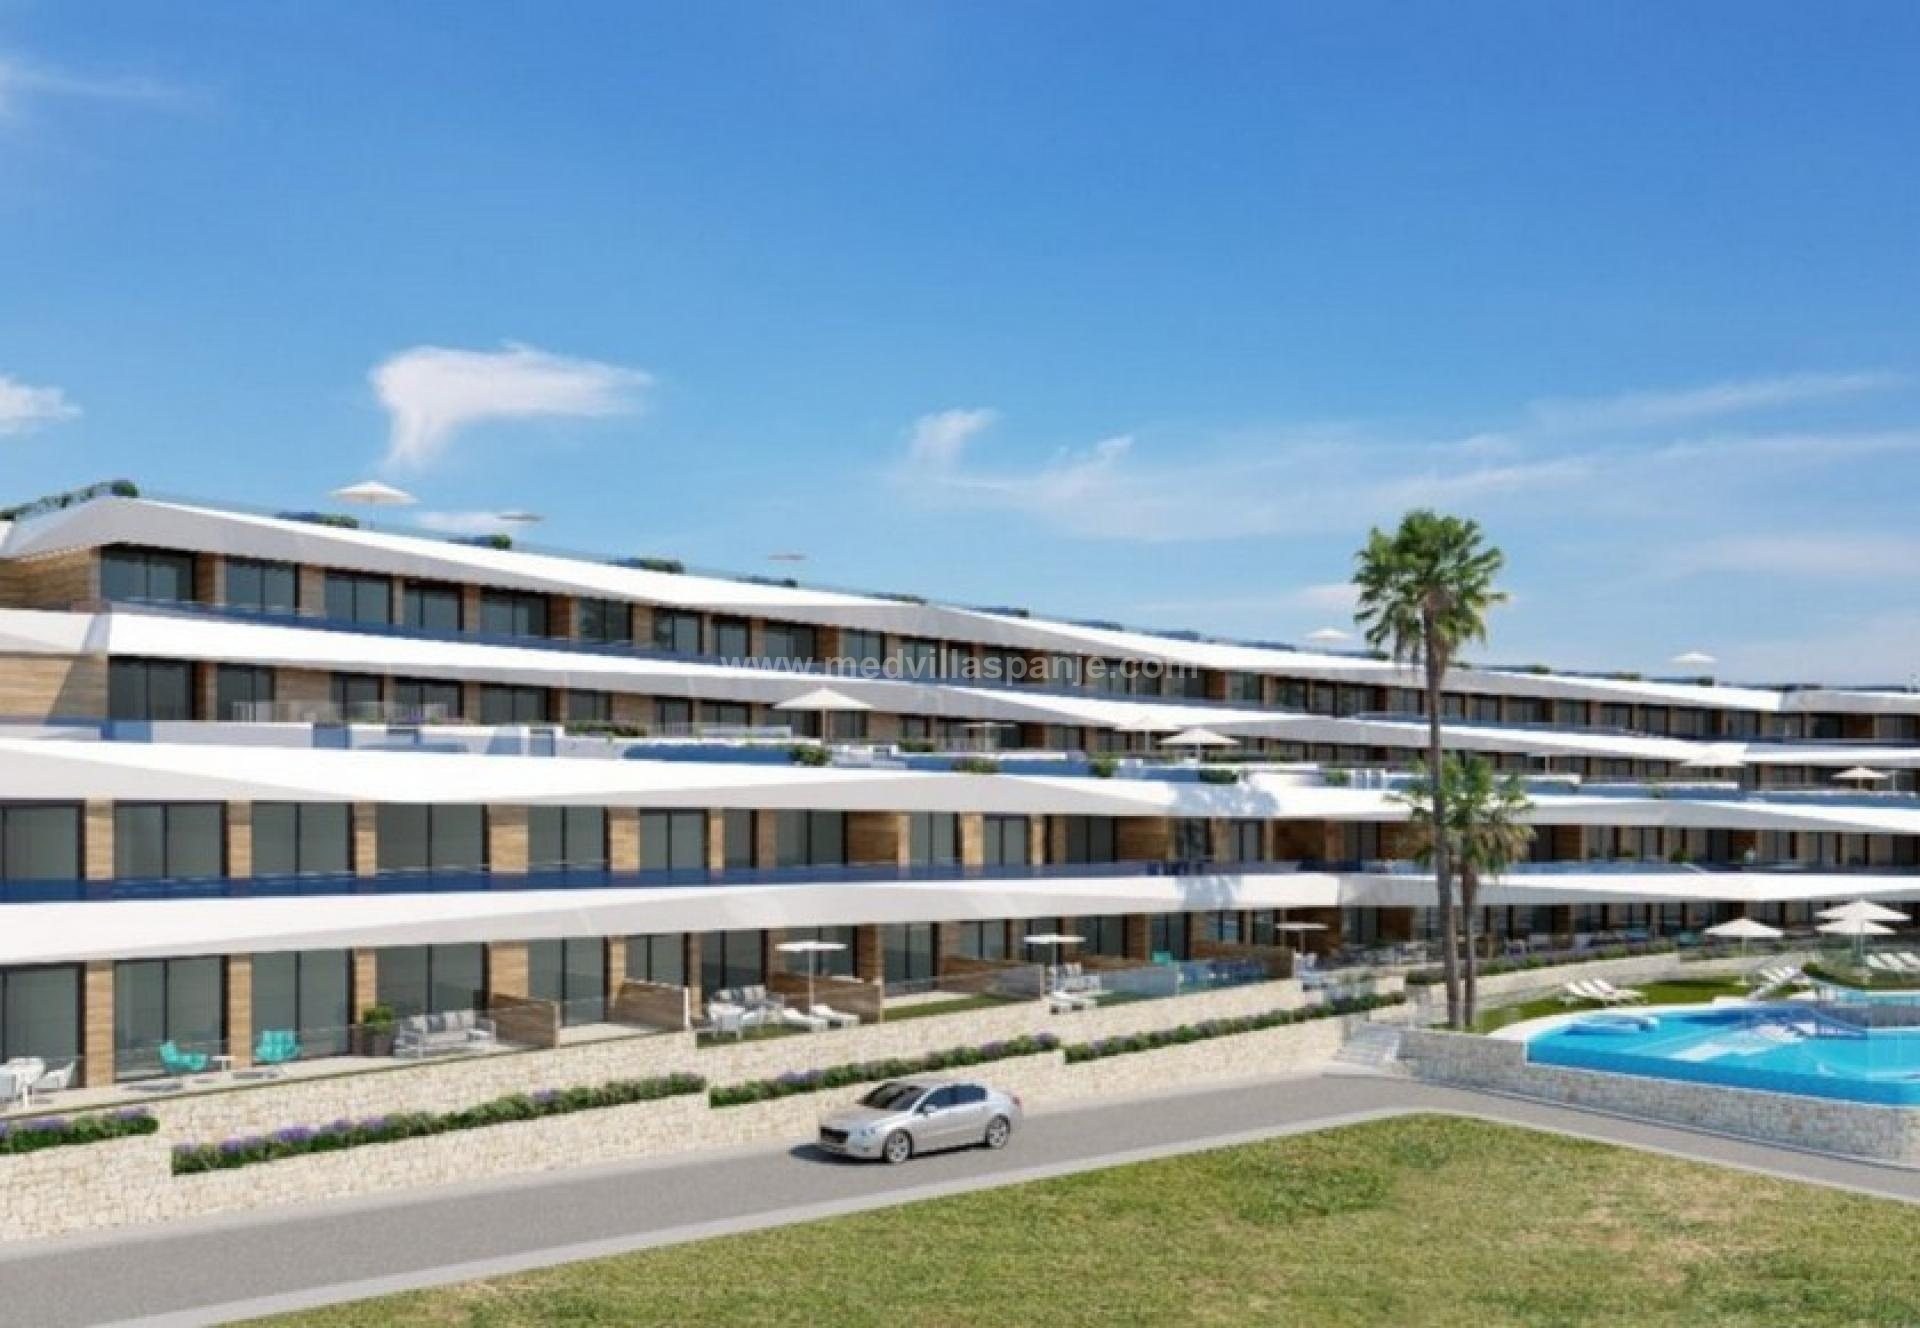 2 bedroom Apartment with terrace in Gran Alacant - New build in Medvilla Spanje